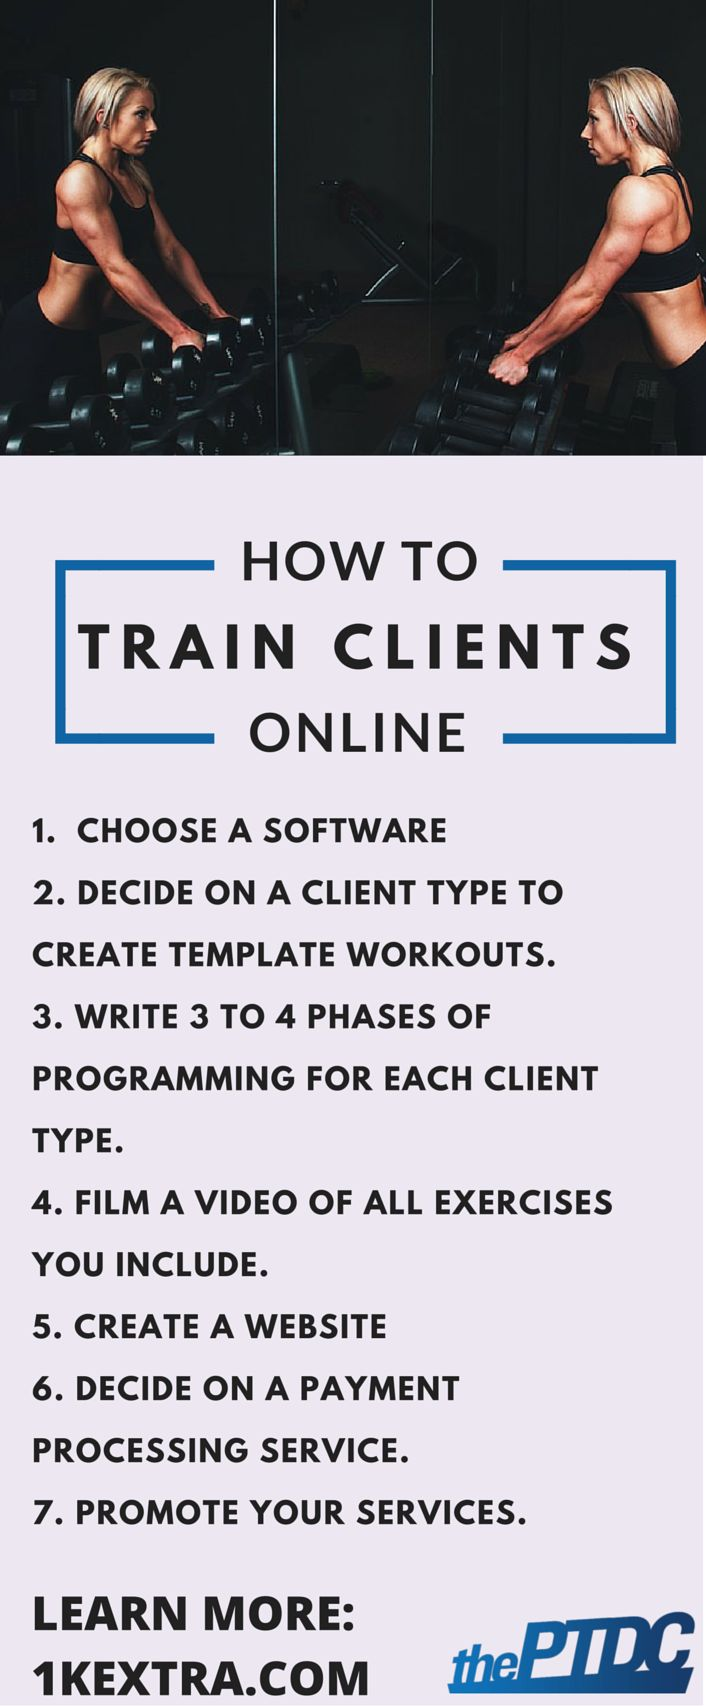 76 best PERSONAL TRAINING BUSINESS TIPS images on Pinterest ...